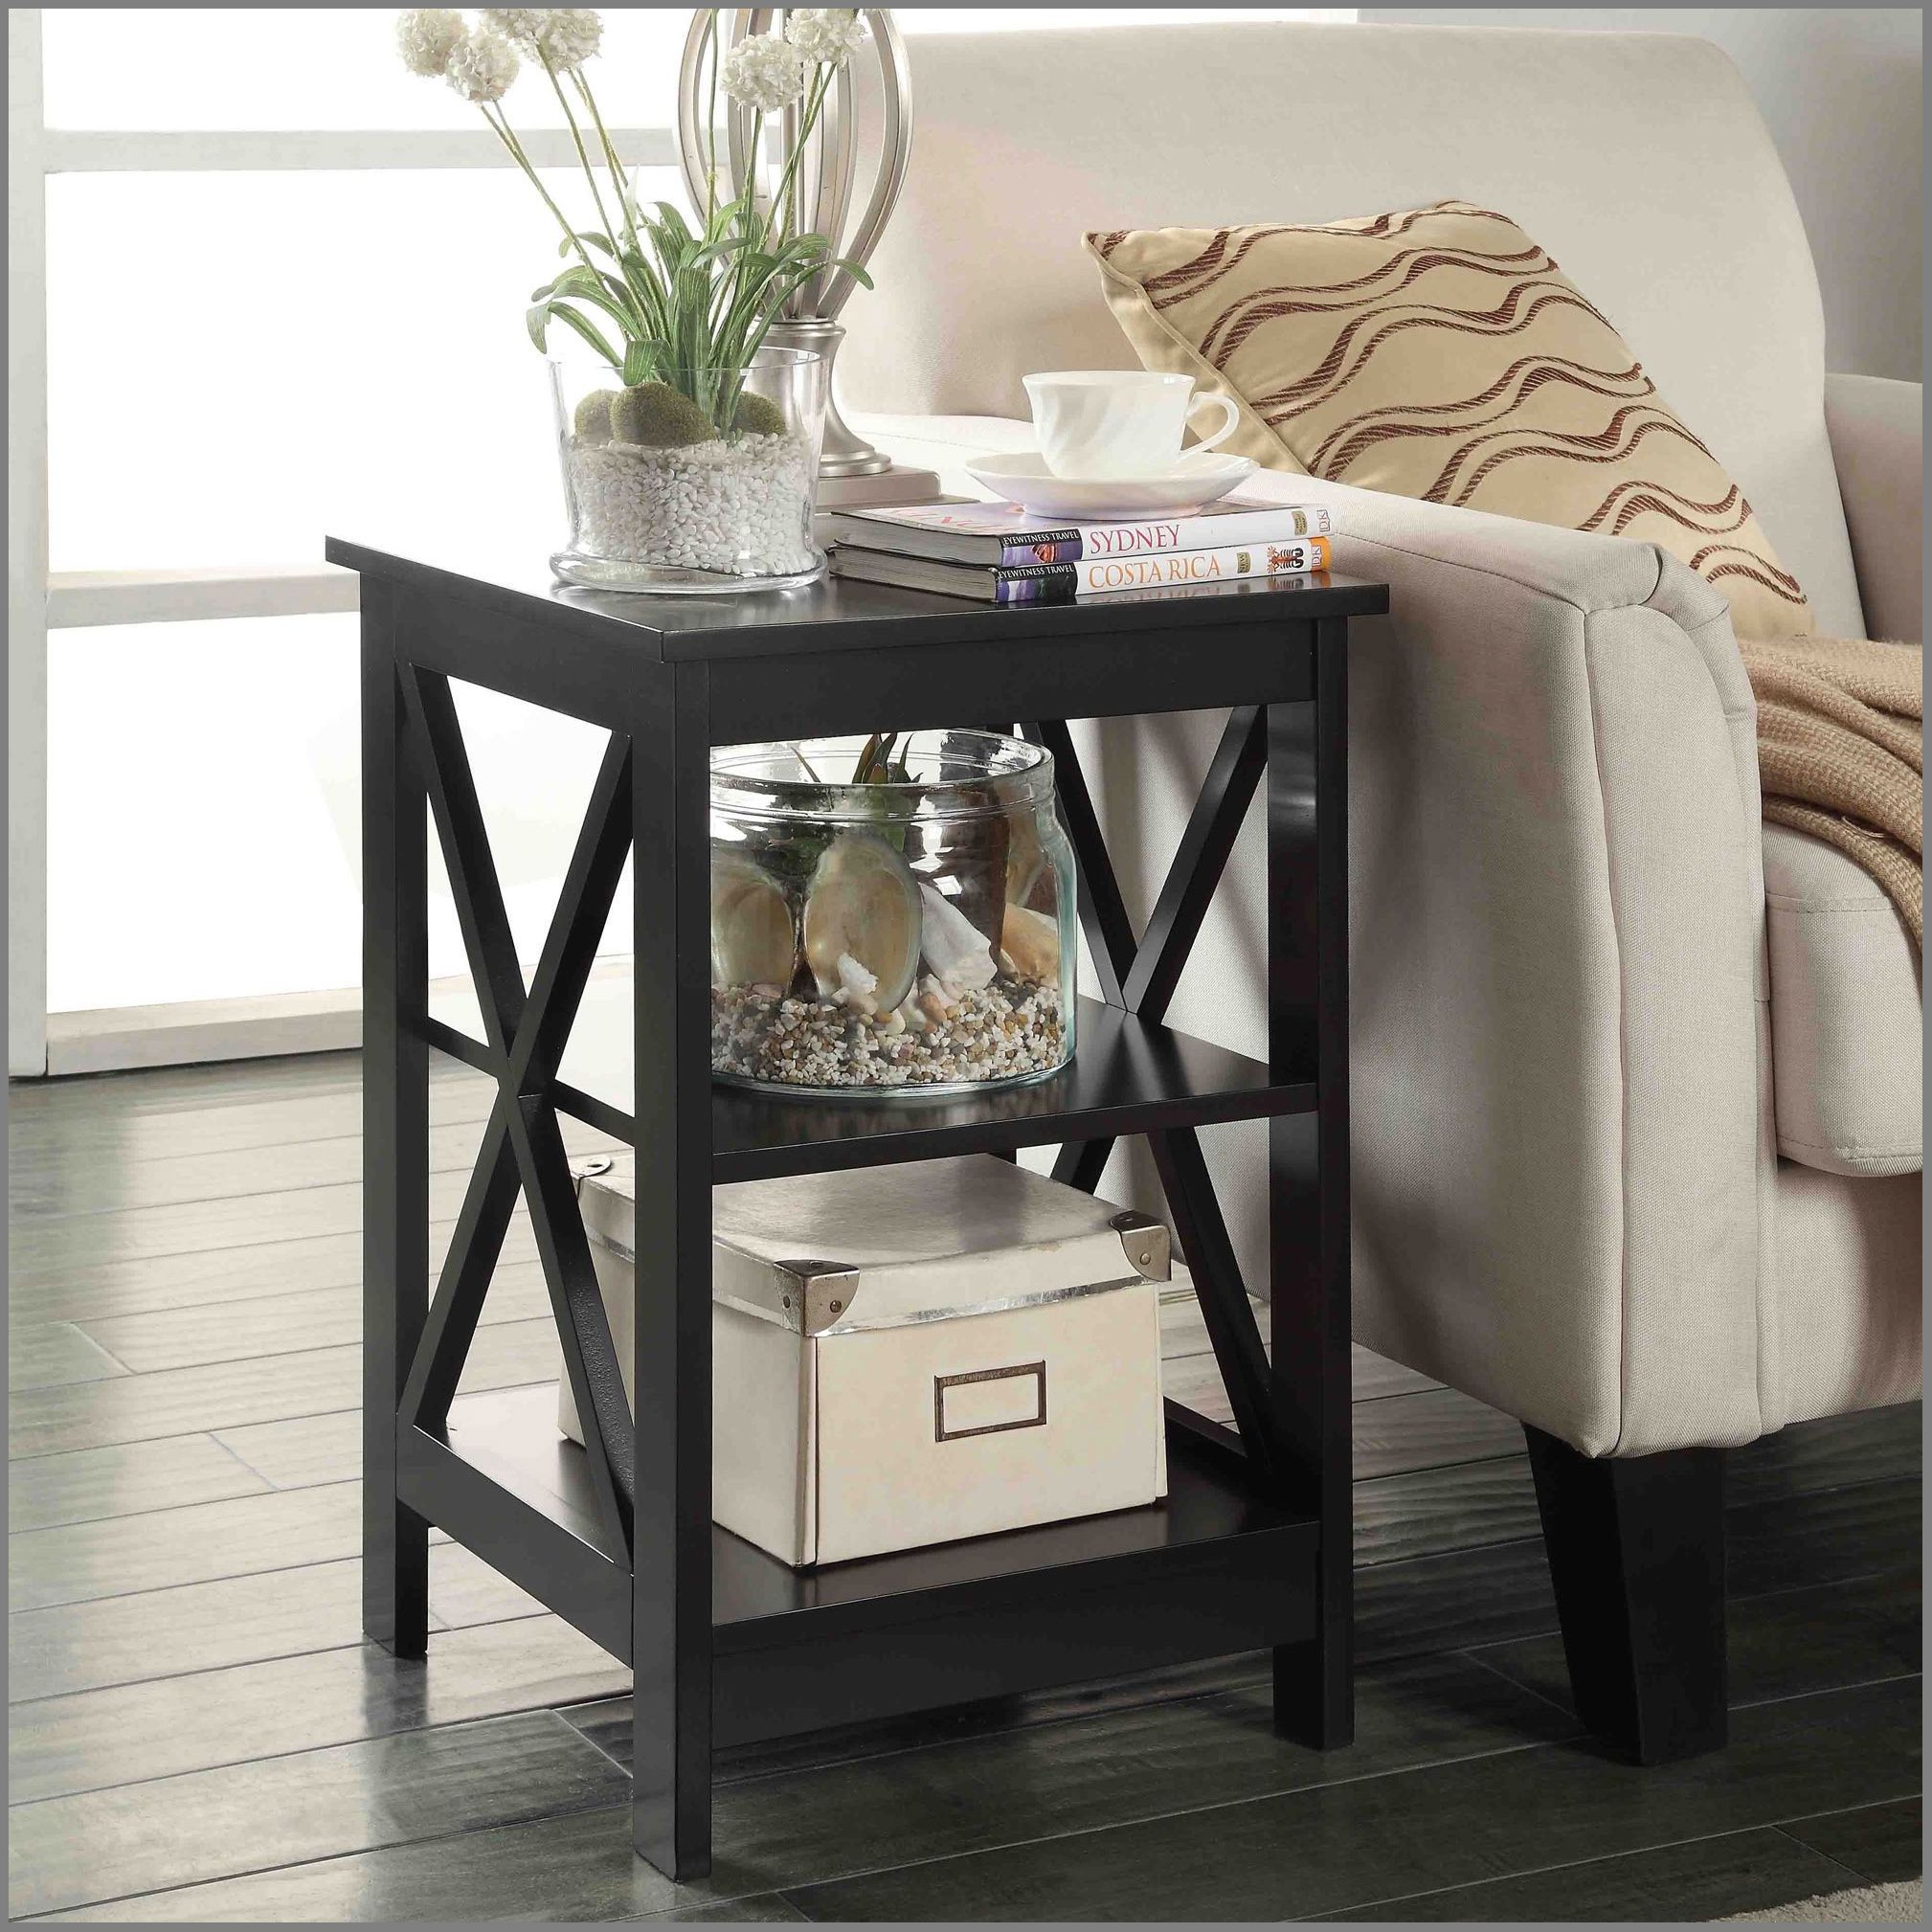 charming end table decorating ideas home design decor for coffee and beautifull complete your living room with this modern square dog built into human paint spray furniture white